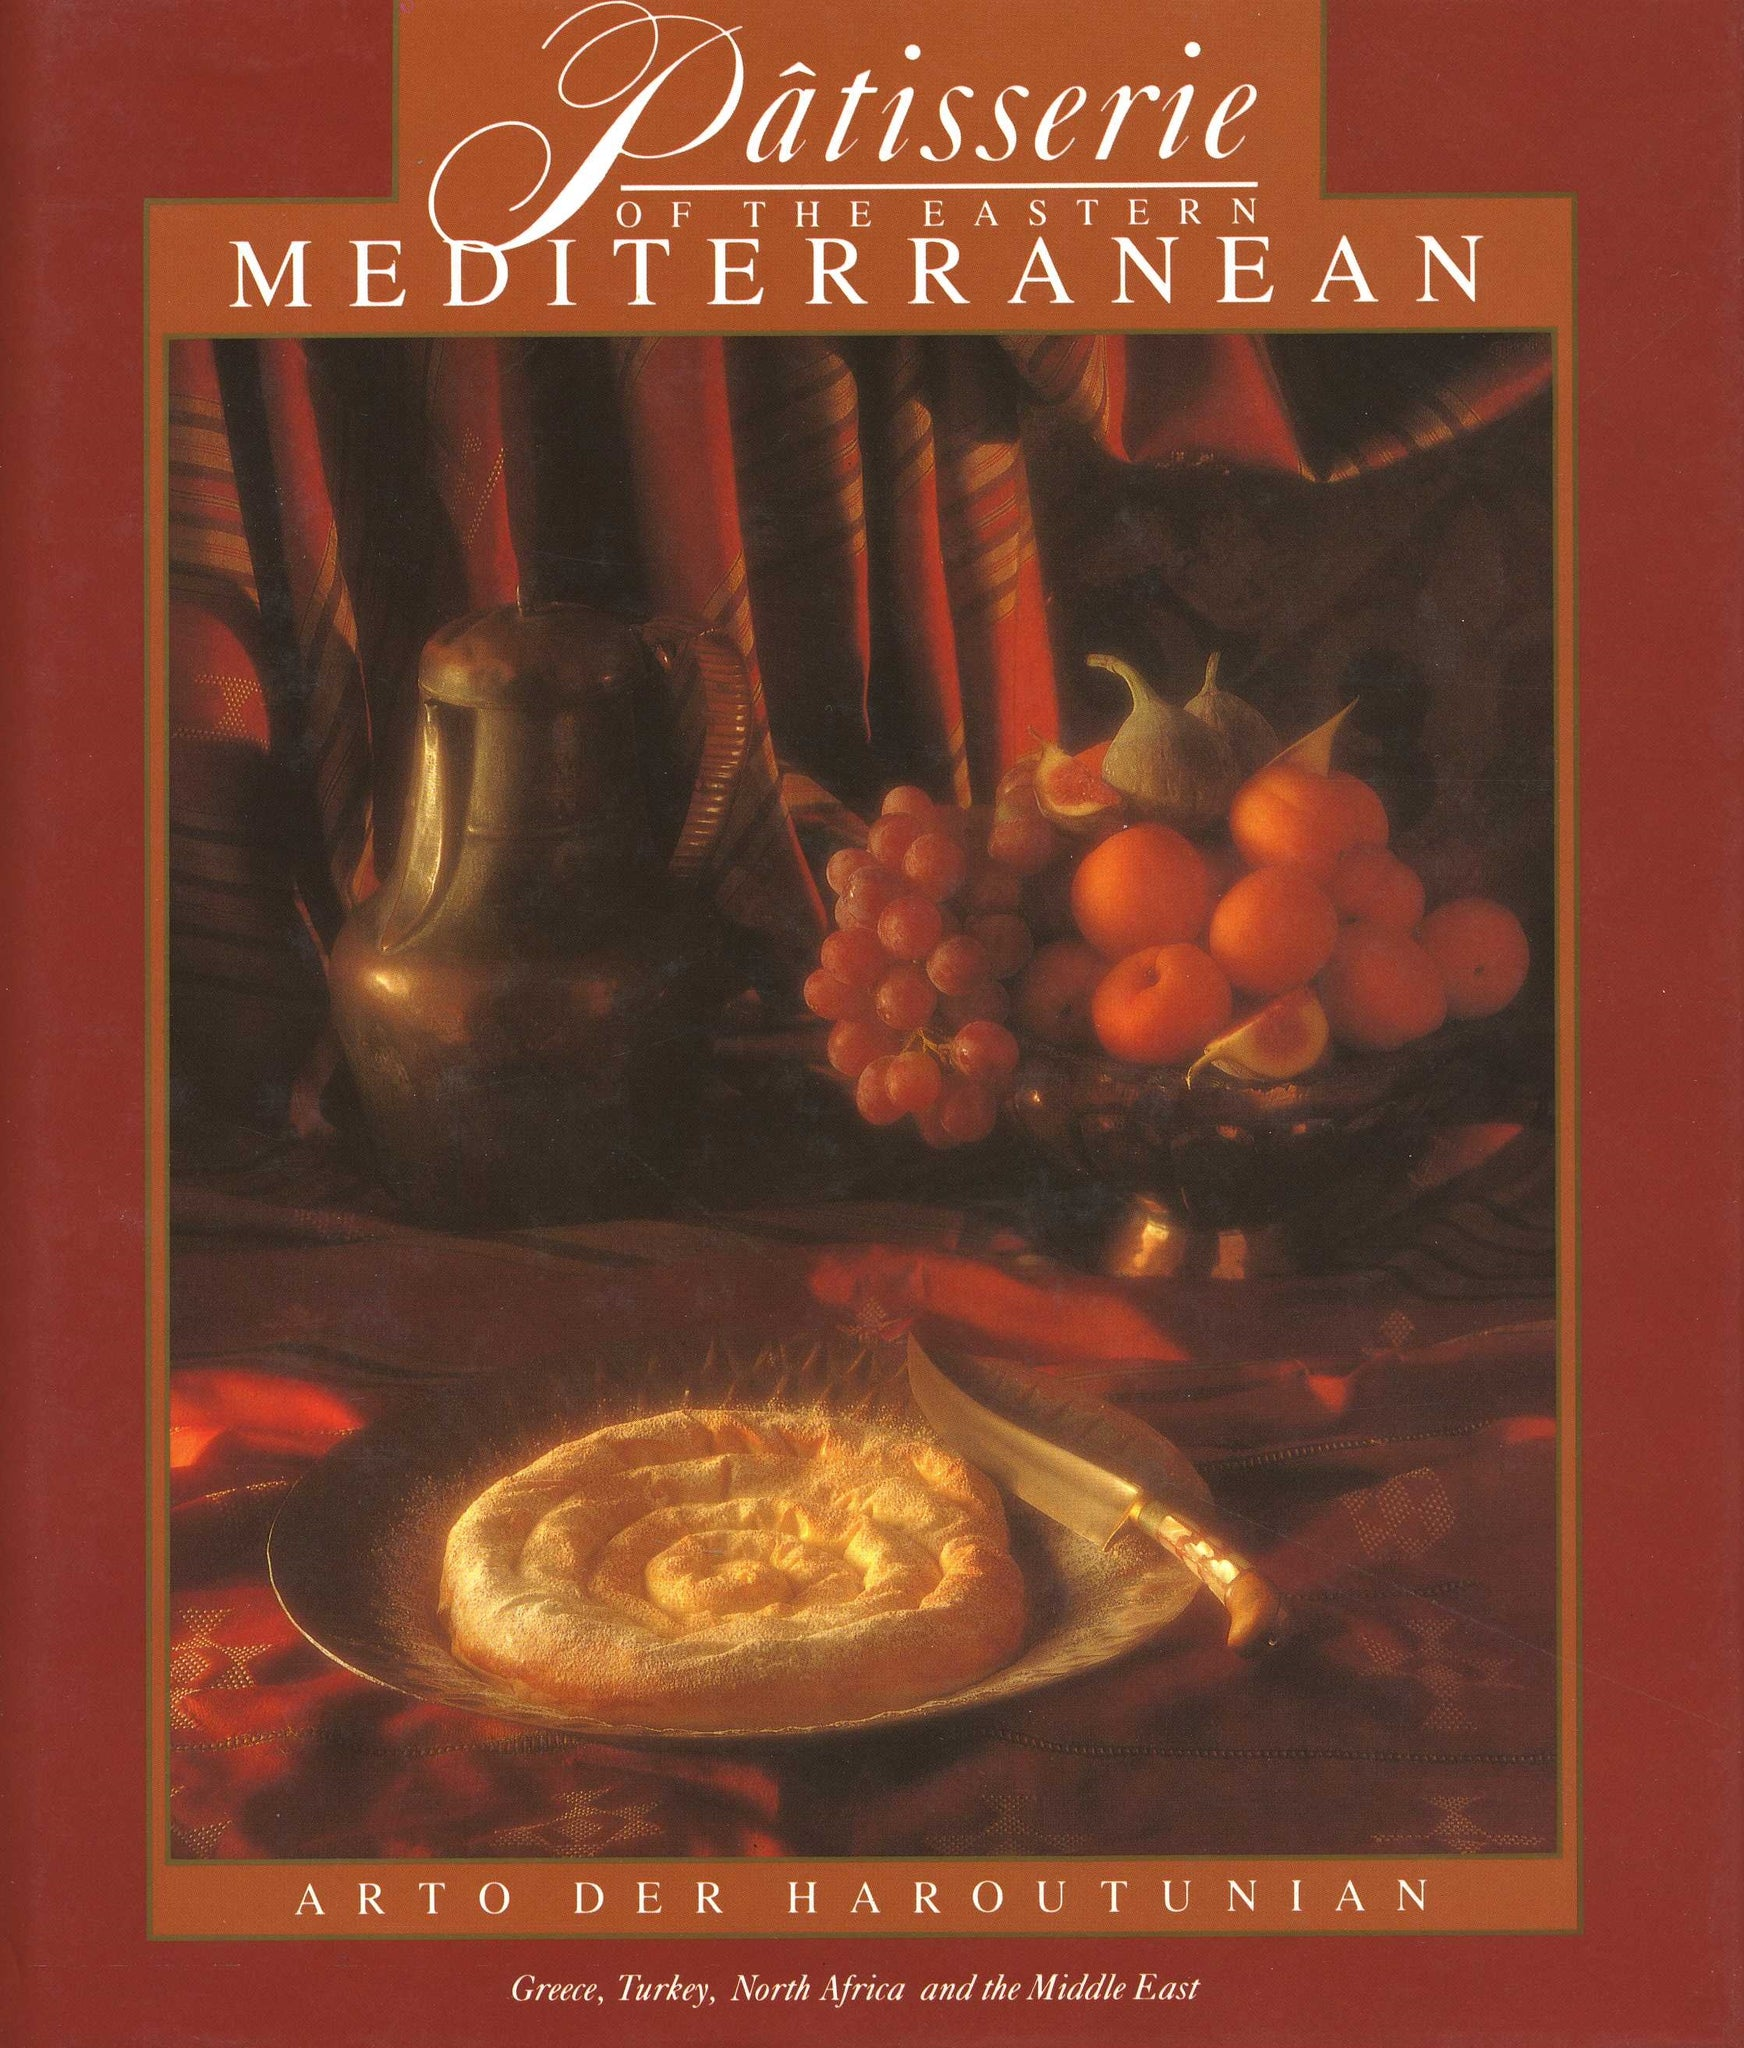 PATISSERIE OF THE EASTERN MEDITERRANEAN: Greece, Turkey, North Africa, and the Middle East